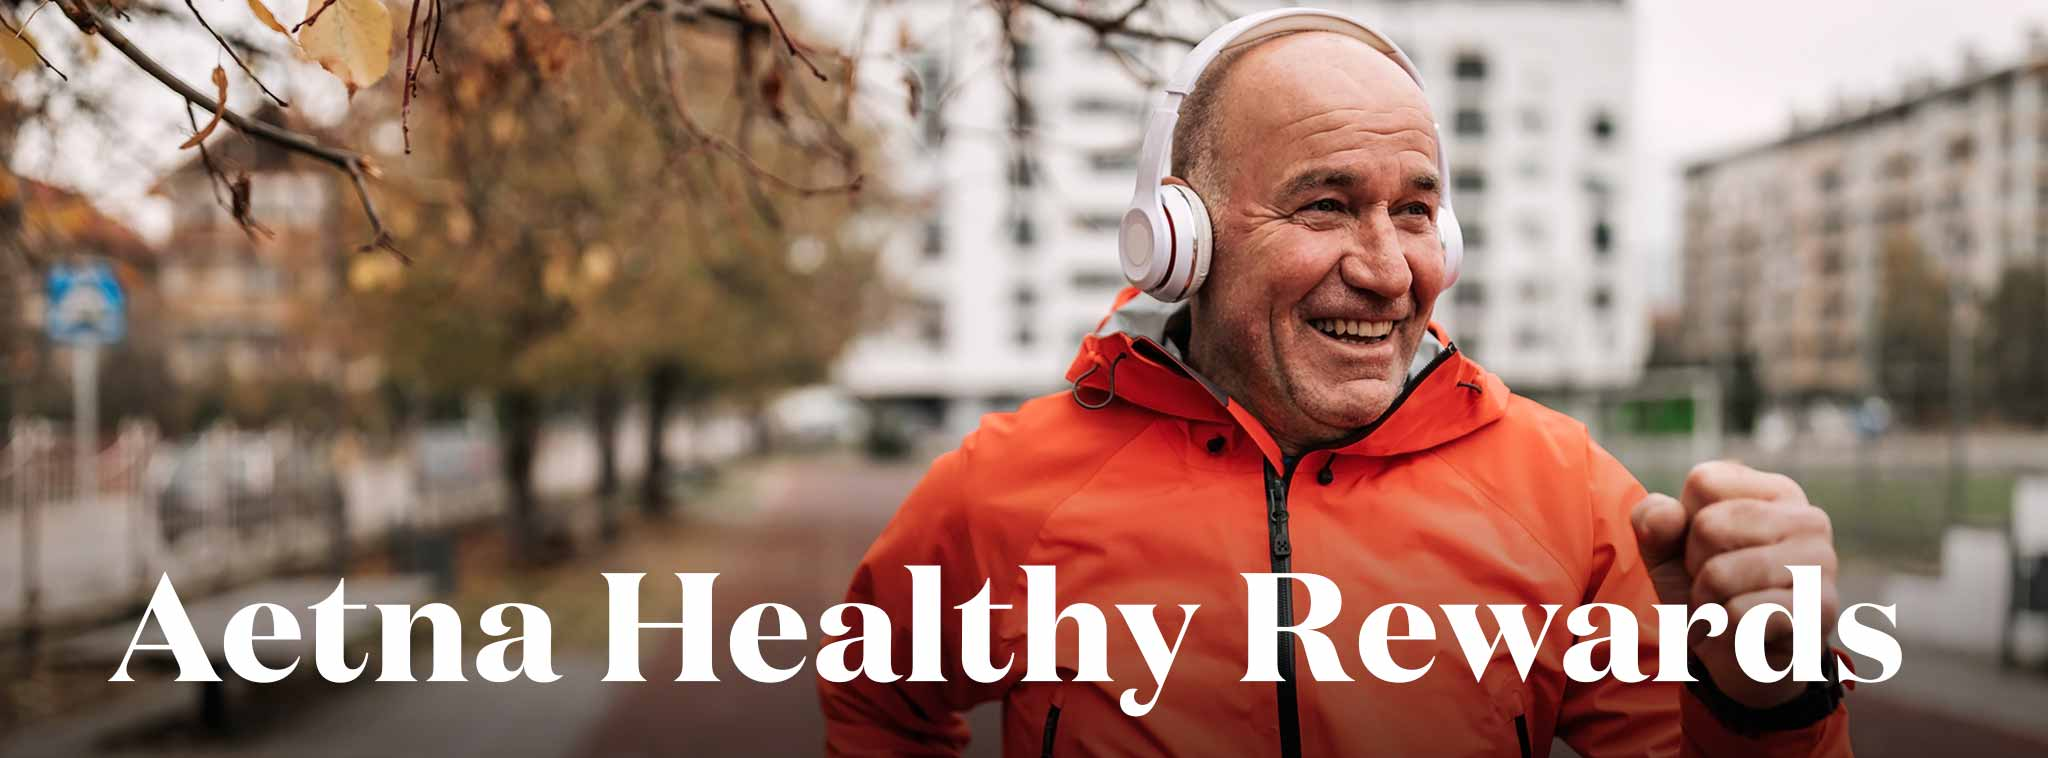 Aetna Healthy Rewards